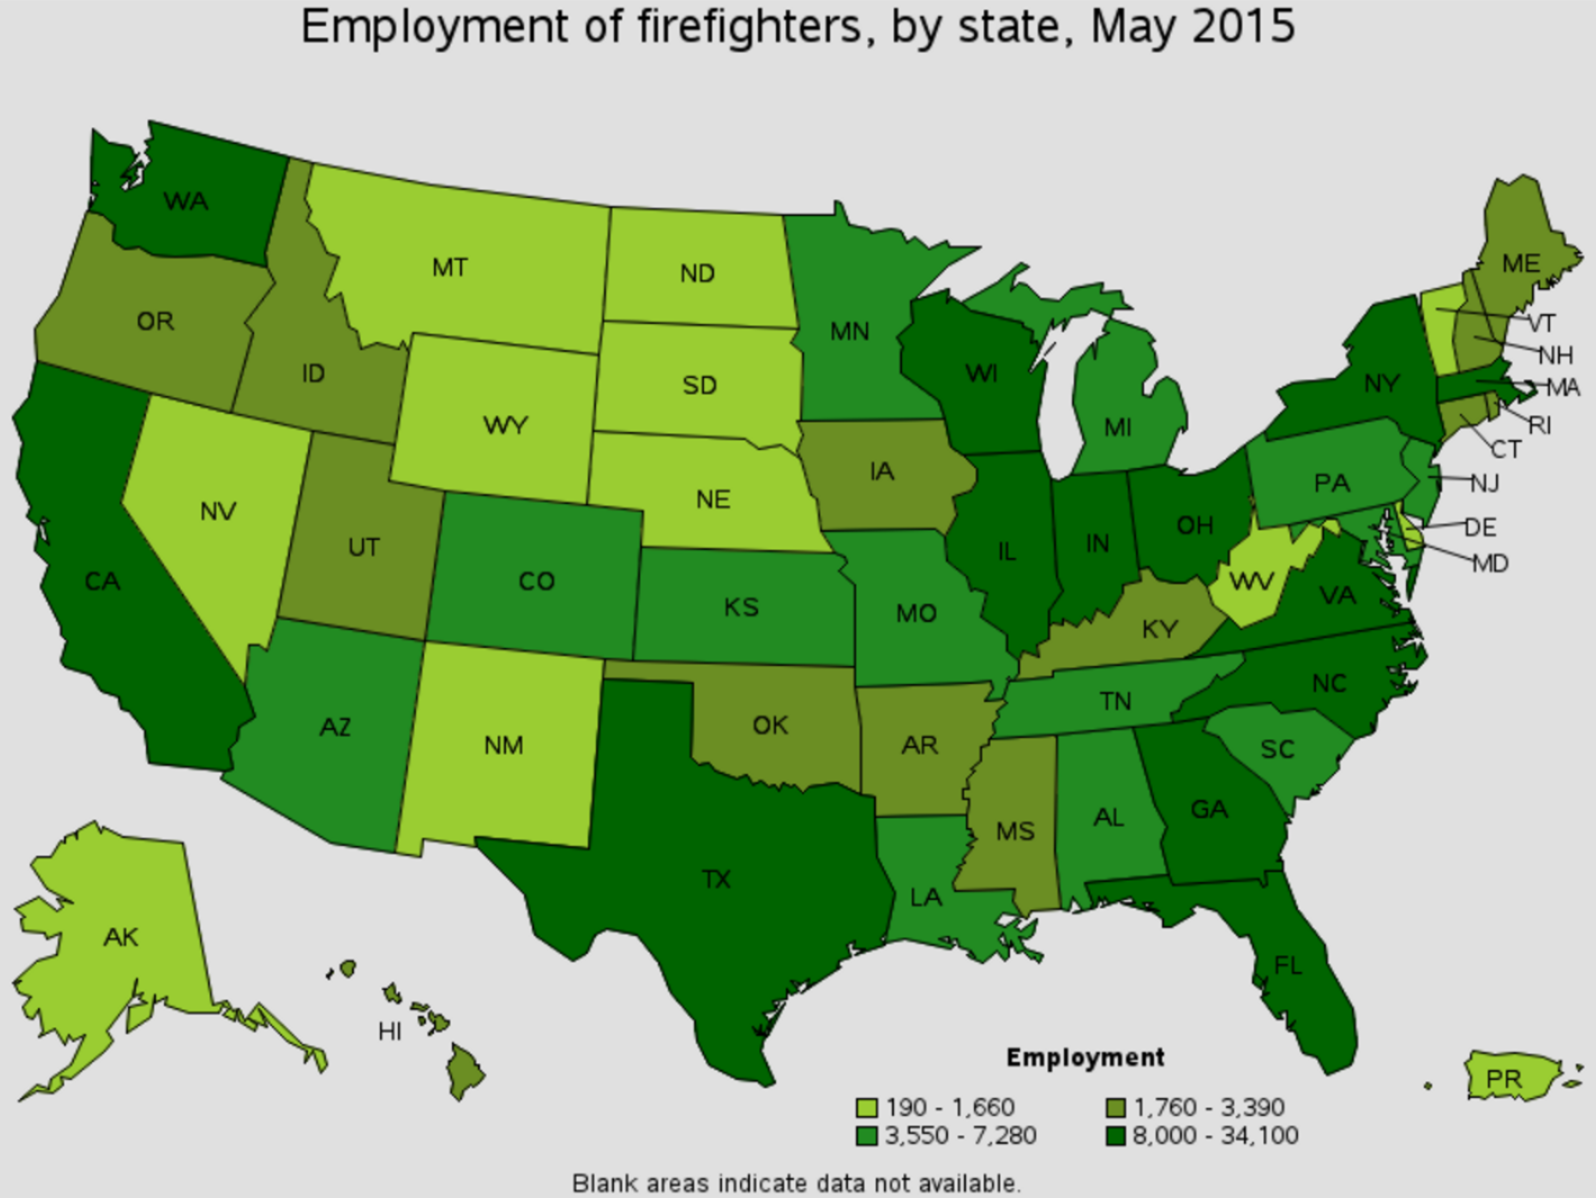 firefighter job outlook by state Wrens Georgia